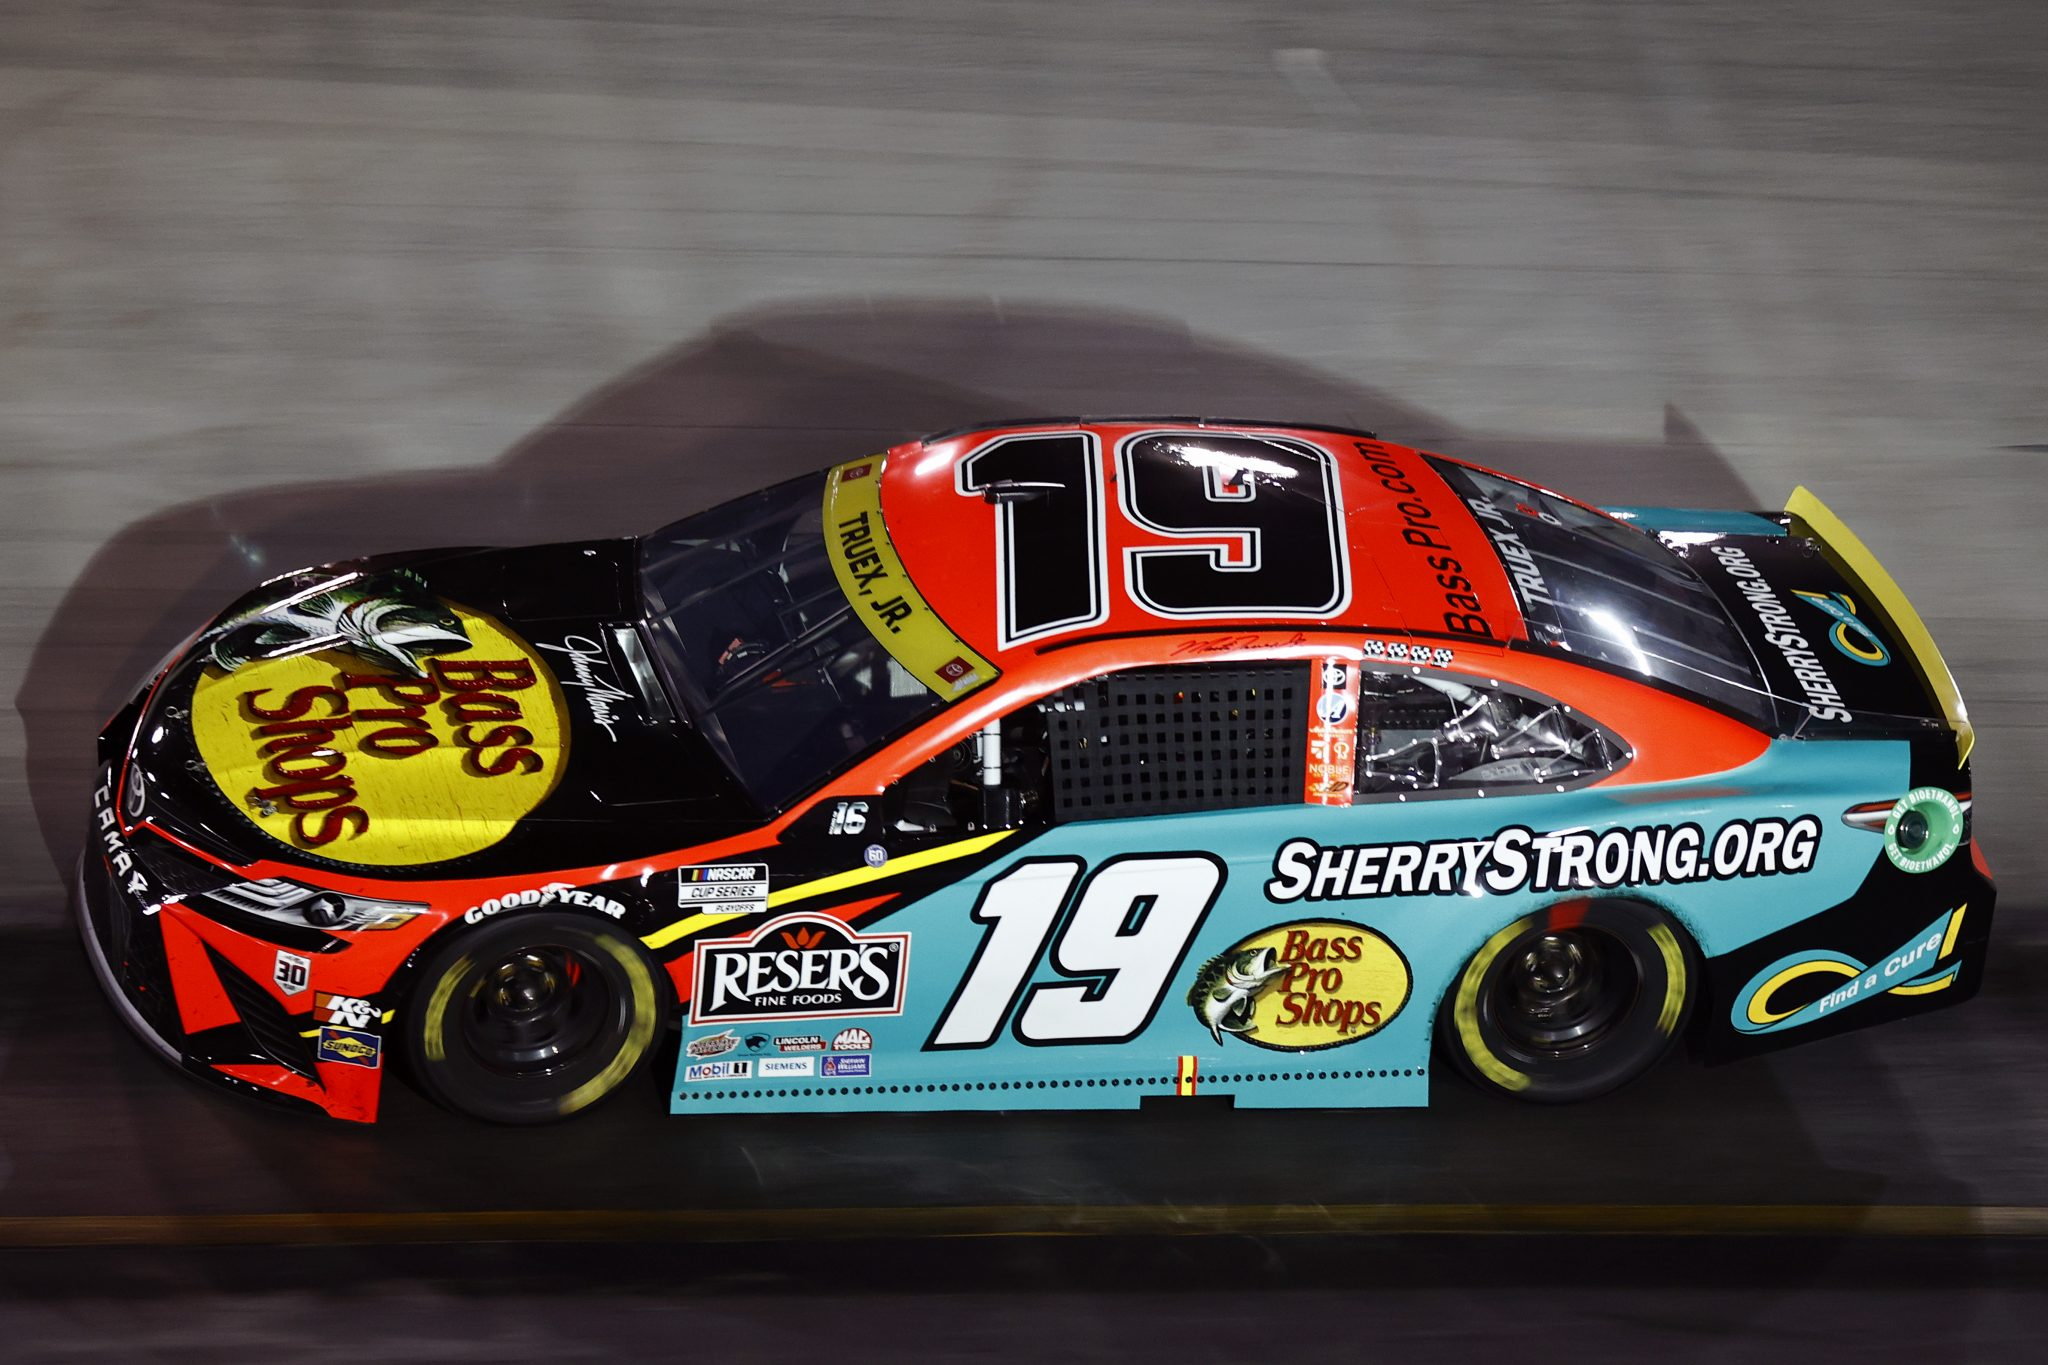 BRISTOL, TENNESSEE - SEPTEMBER 18: Martin Truex Jr., driver of the #19 Bass Pro Shops/SherryStrong.org Toyota, drives during the NASCAR Cup Series Bass Pro Shops Night Race at Bristol Motor Speedway on September 18, 2021 in Bristol, Tennessee. (Photo by Jared C. Tilton/Getty Images) | Getty Images